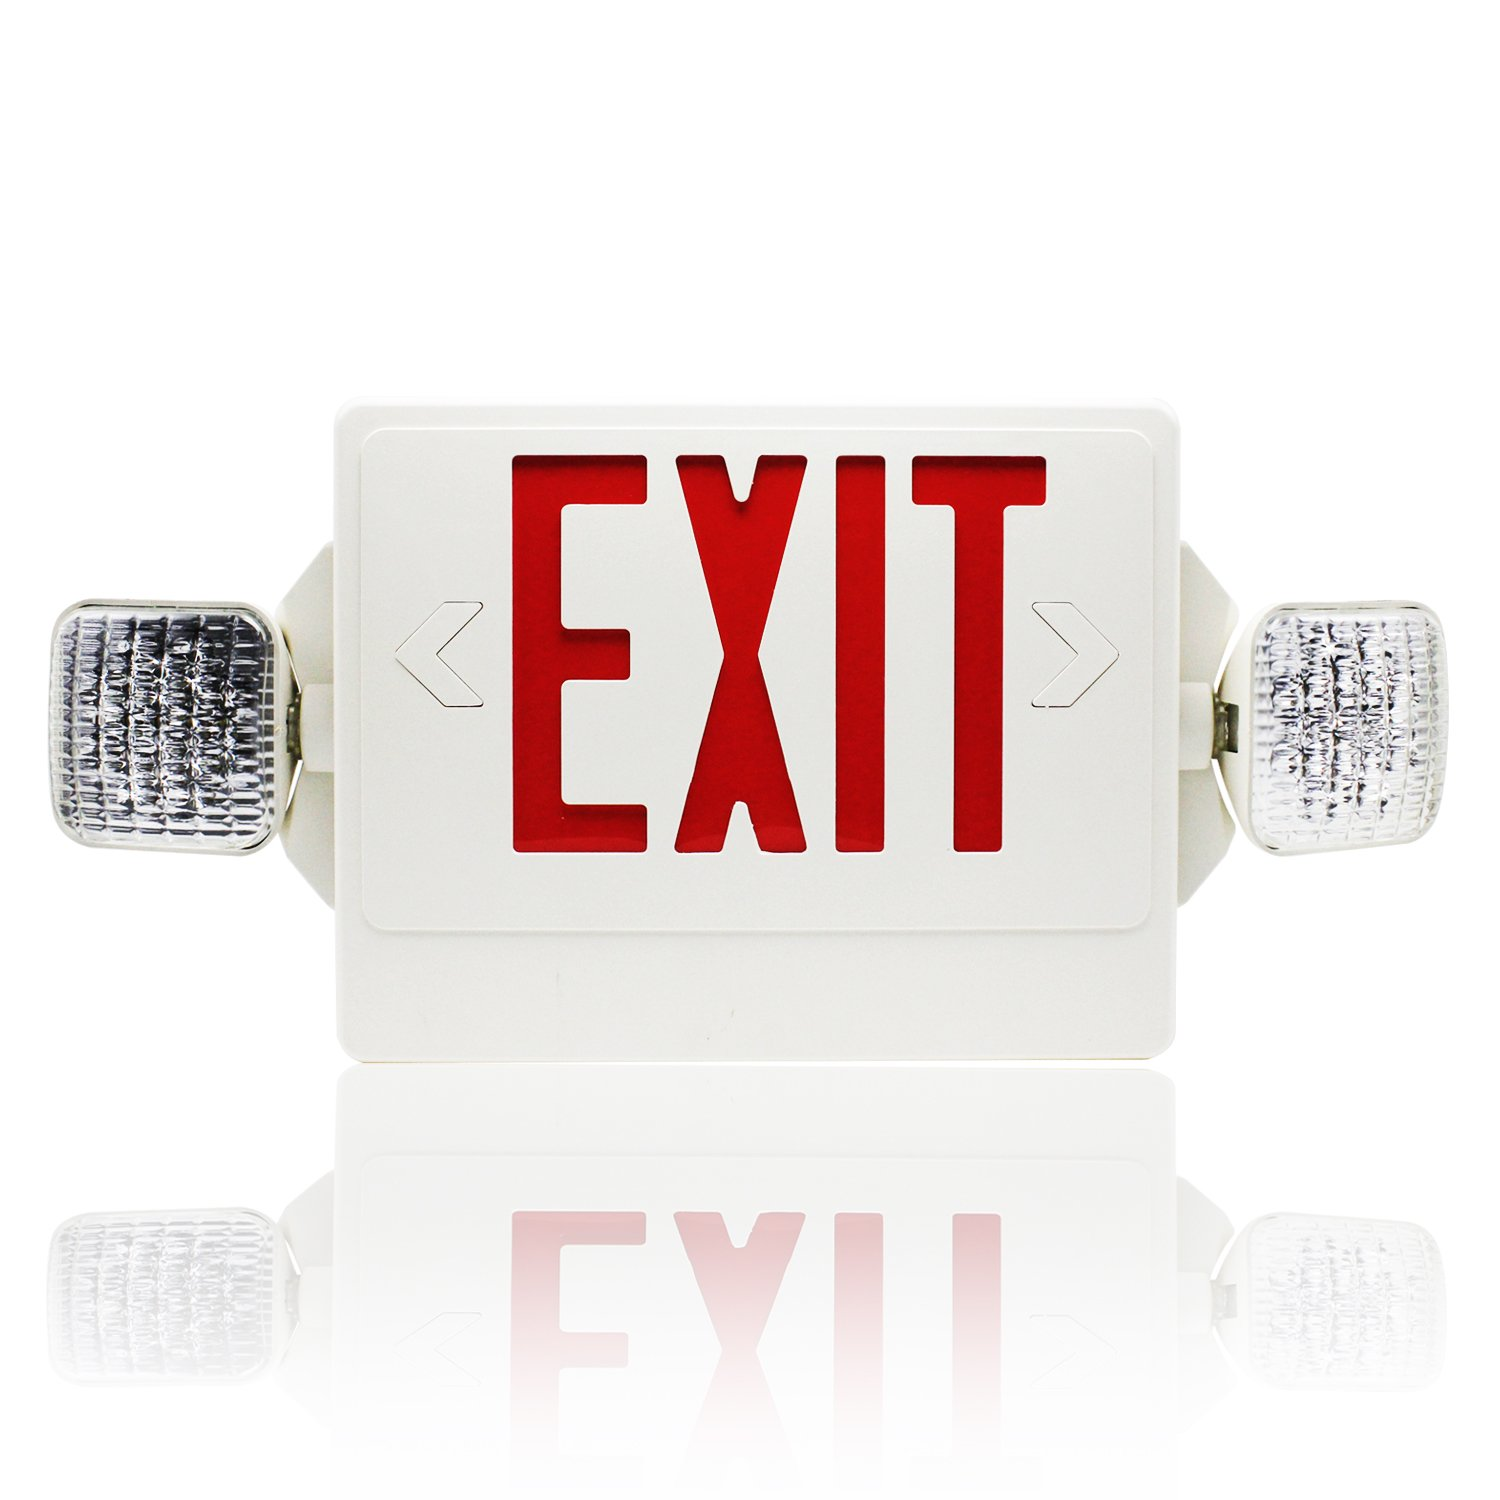 eTopLighting 20 LED Lighting Beads Red Exit Sign Emergency Lighting with Rotate LED Lamp Head and Battery Back-up, AGG2401